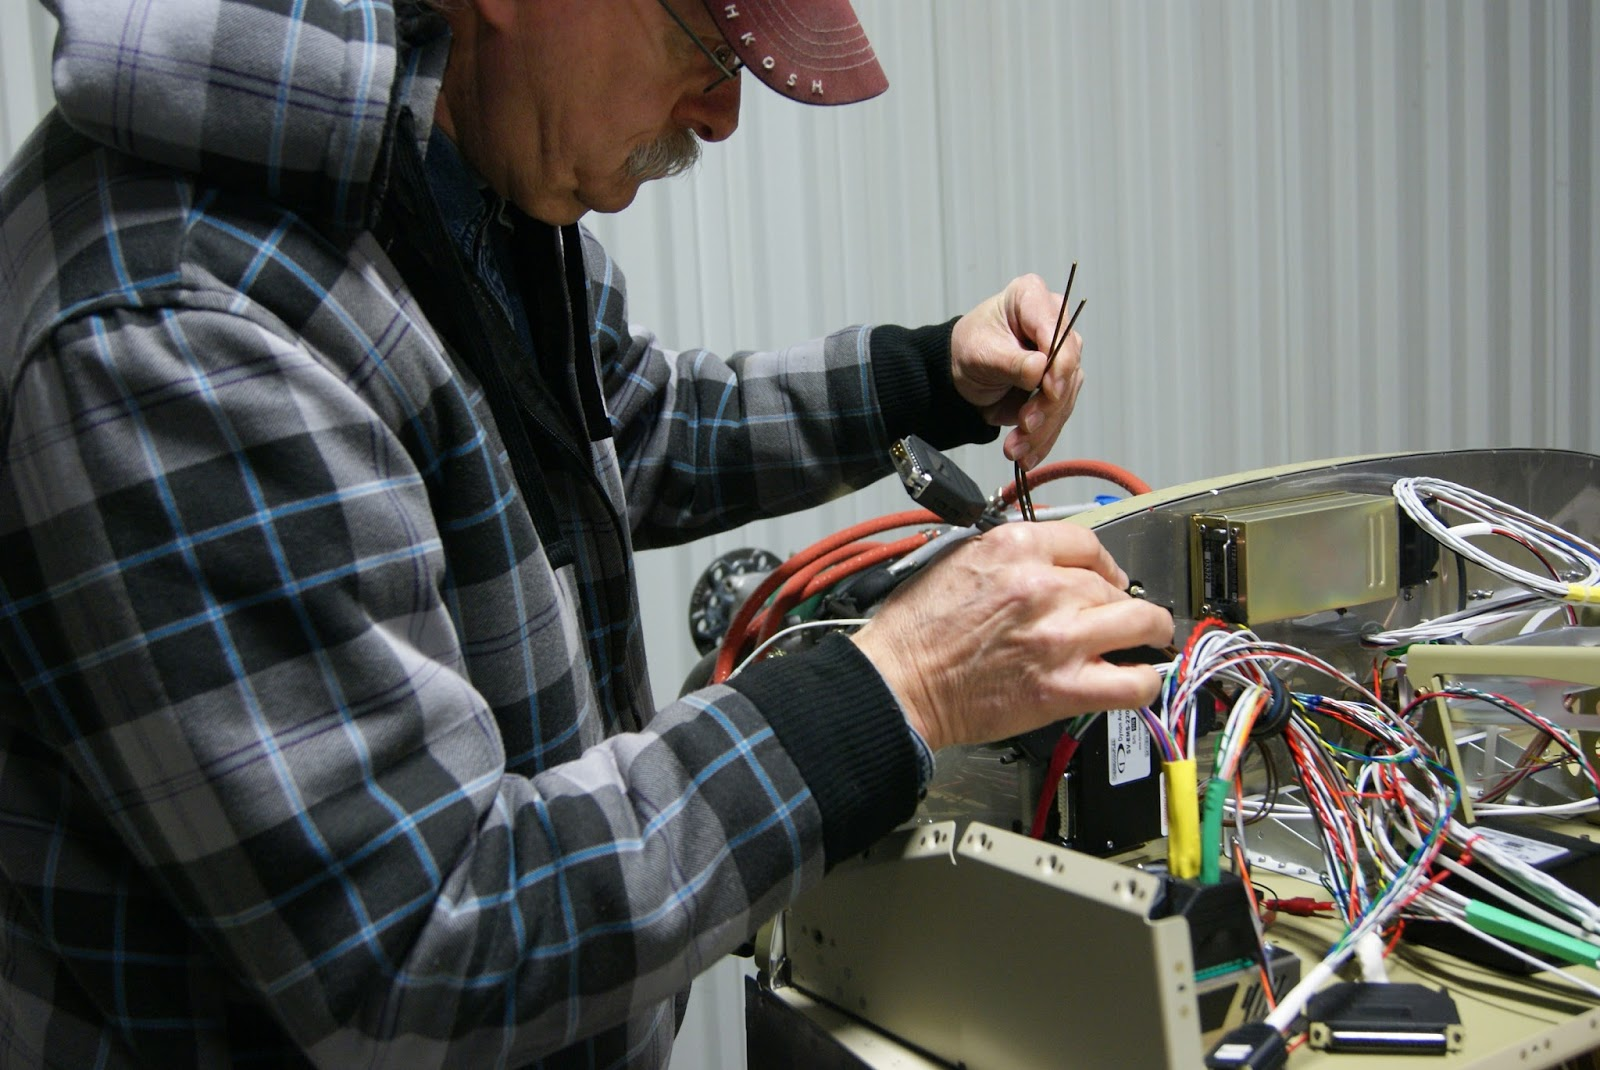 Dog Aviation Johns Rv 12 Blog Installed More Wiring Harnesses Wire Harness Grommet Fishing The Wh Egt Through Firewall